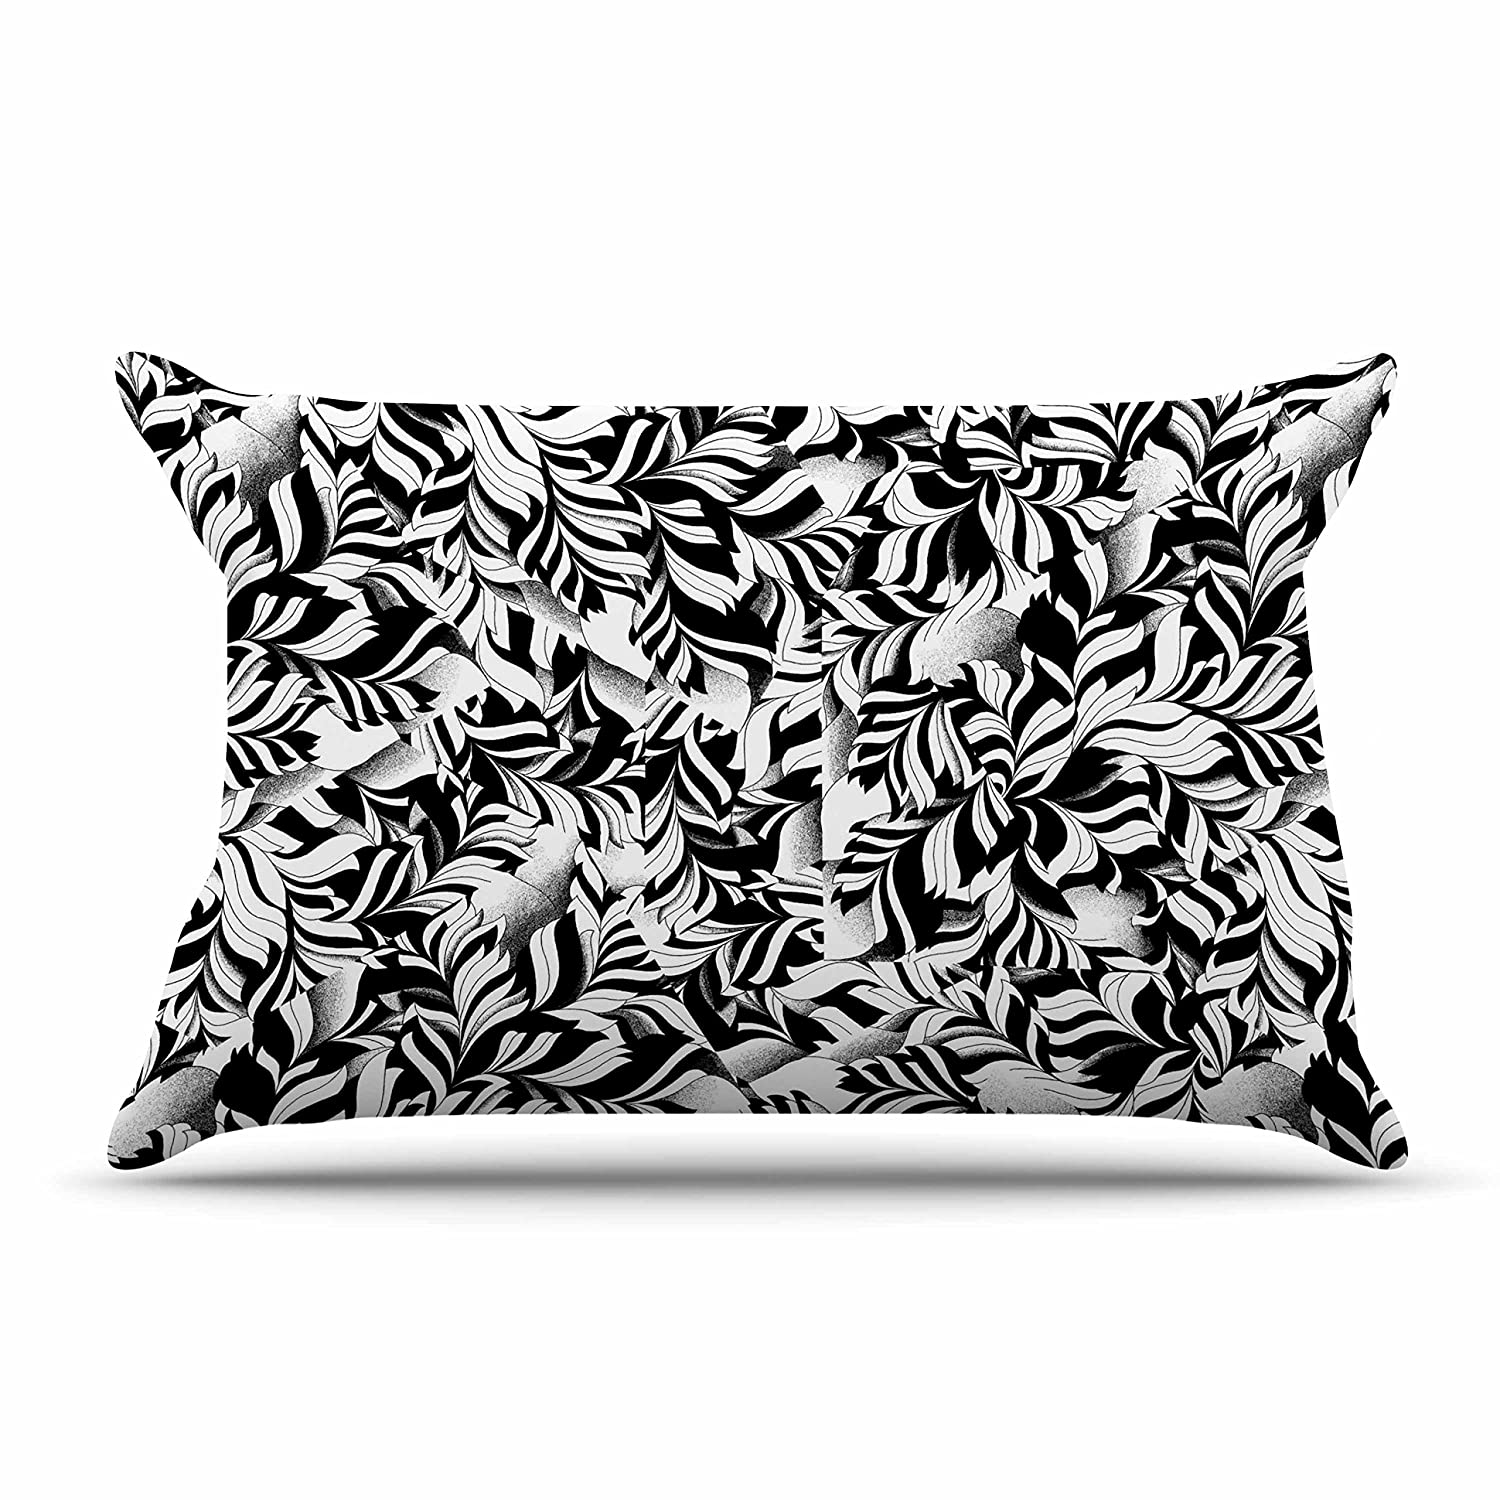 Kess InHouse Victoria Krupp Monochrome Leaves Mosaic King Featherweight Sham